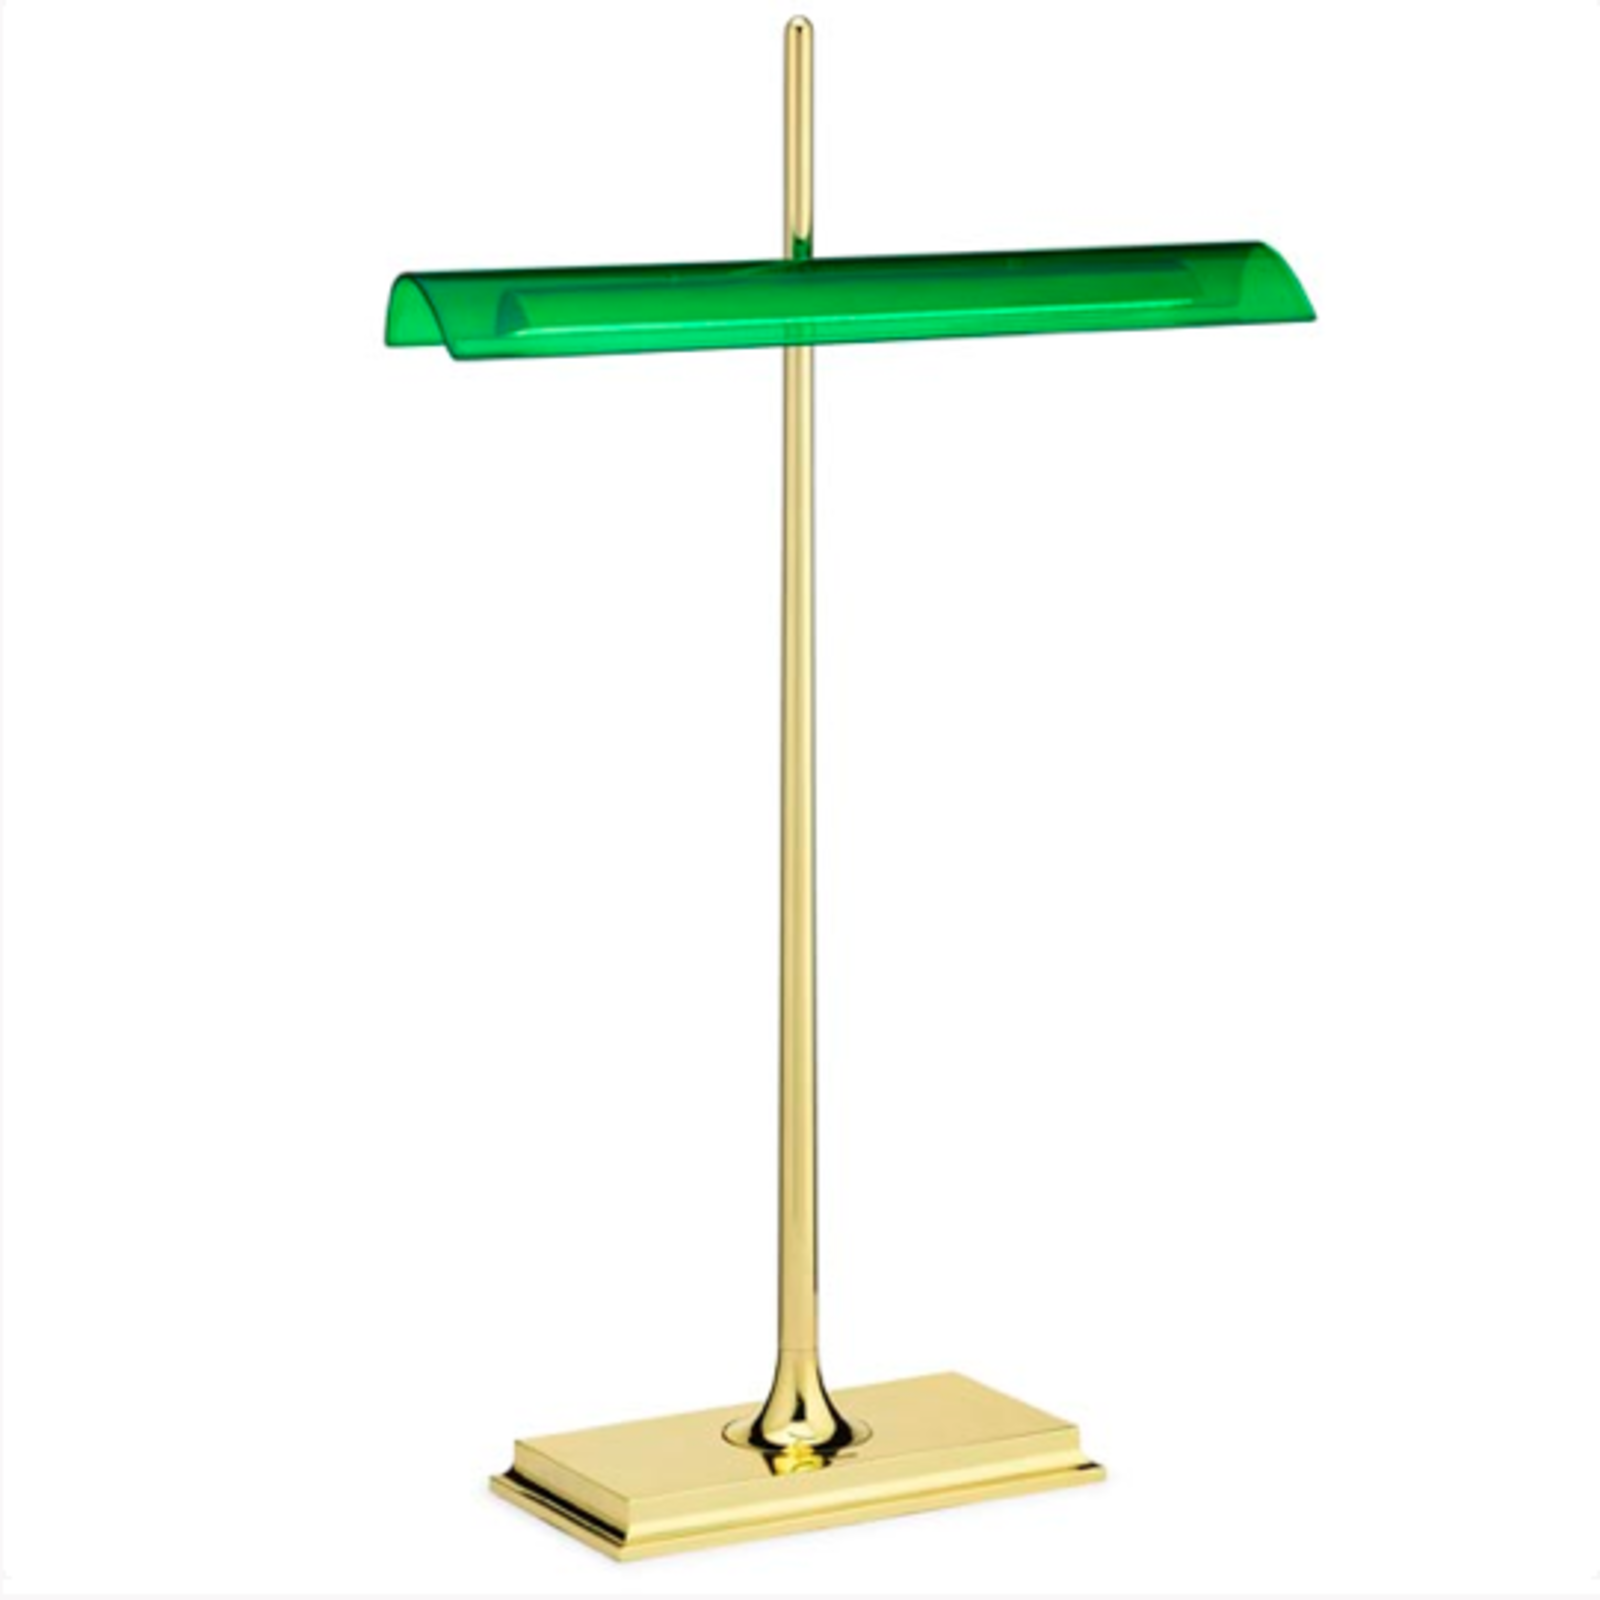 """A modern take on an old classic, the Goldman Table Lamp is a high-powered desk lamp with a minimal footprint. The lamp is available with a gold base and transparent diffuser, reminiscent of traditional banker's lamps, or in a more refined black and grey design. The lamp is illuminated by an optical switch on its base and uses soft touch dimming technology so it's easy to adjust between decorative accent light and pronounced workspace lighting.  Search """"pixo desk lamp graphite"""" from Italian Design Favorites in Honor of Salone del Mobile 2015"""